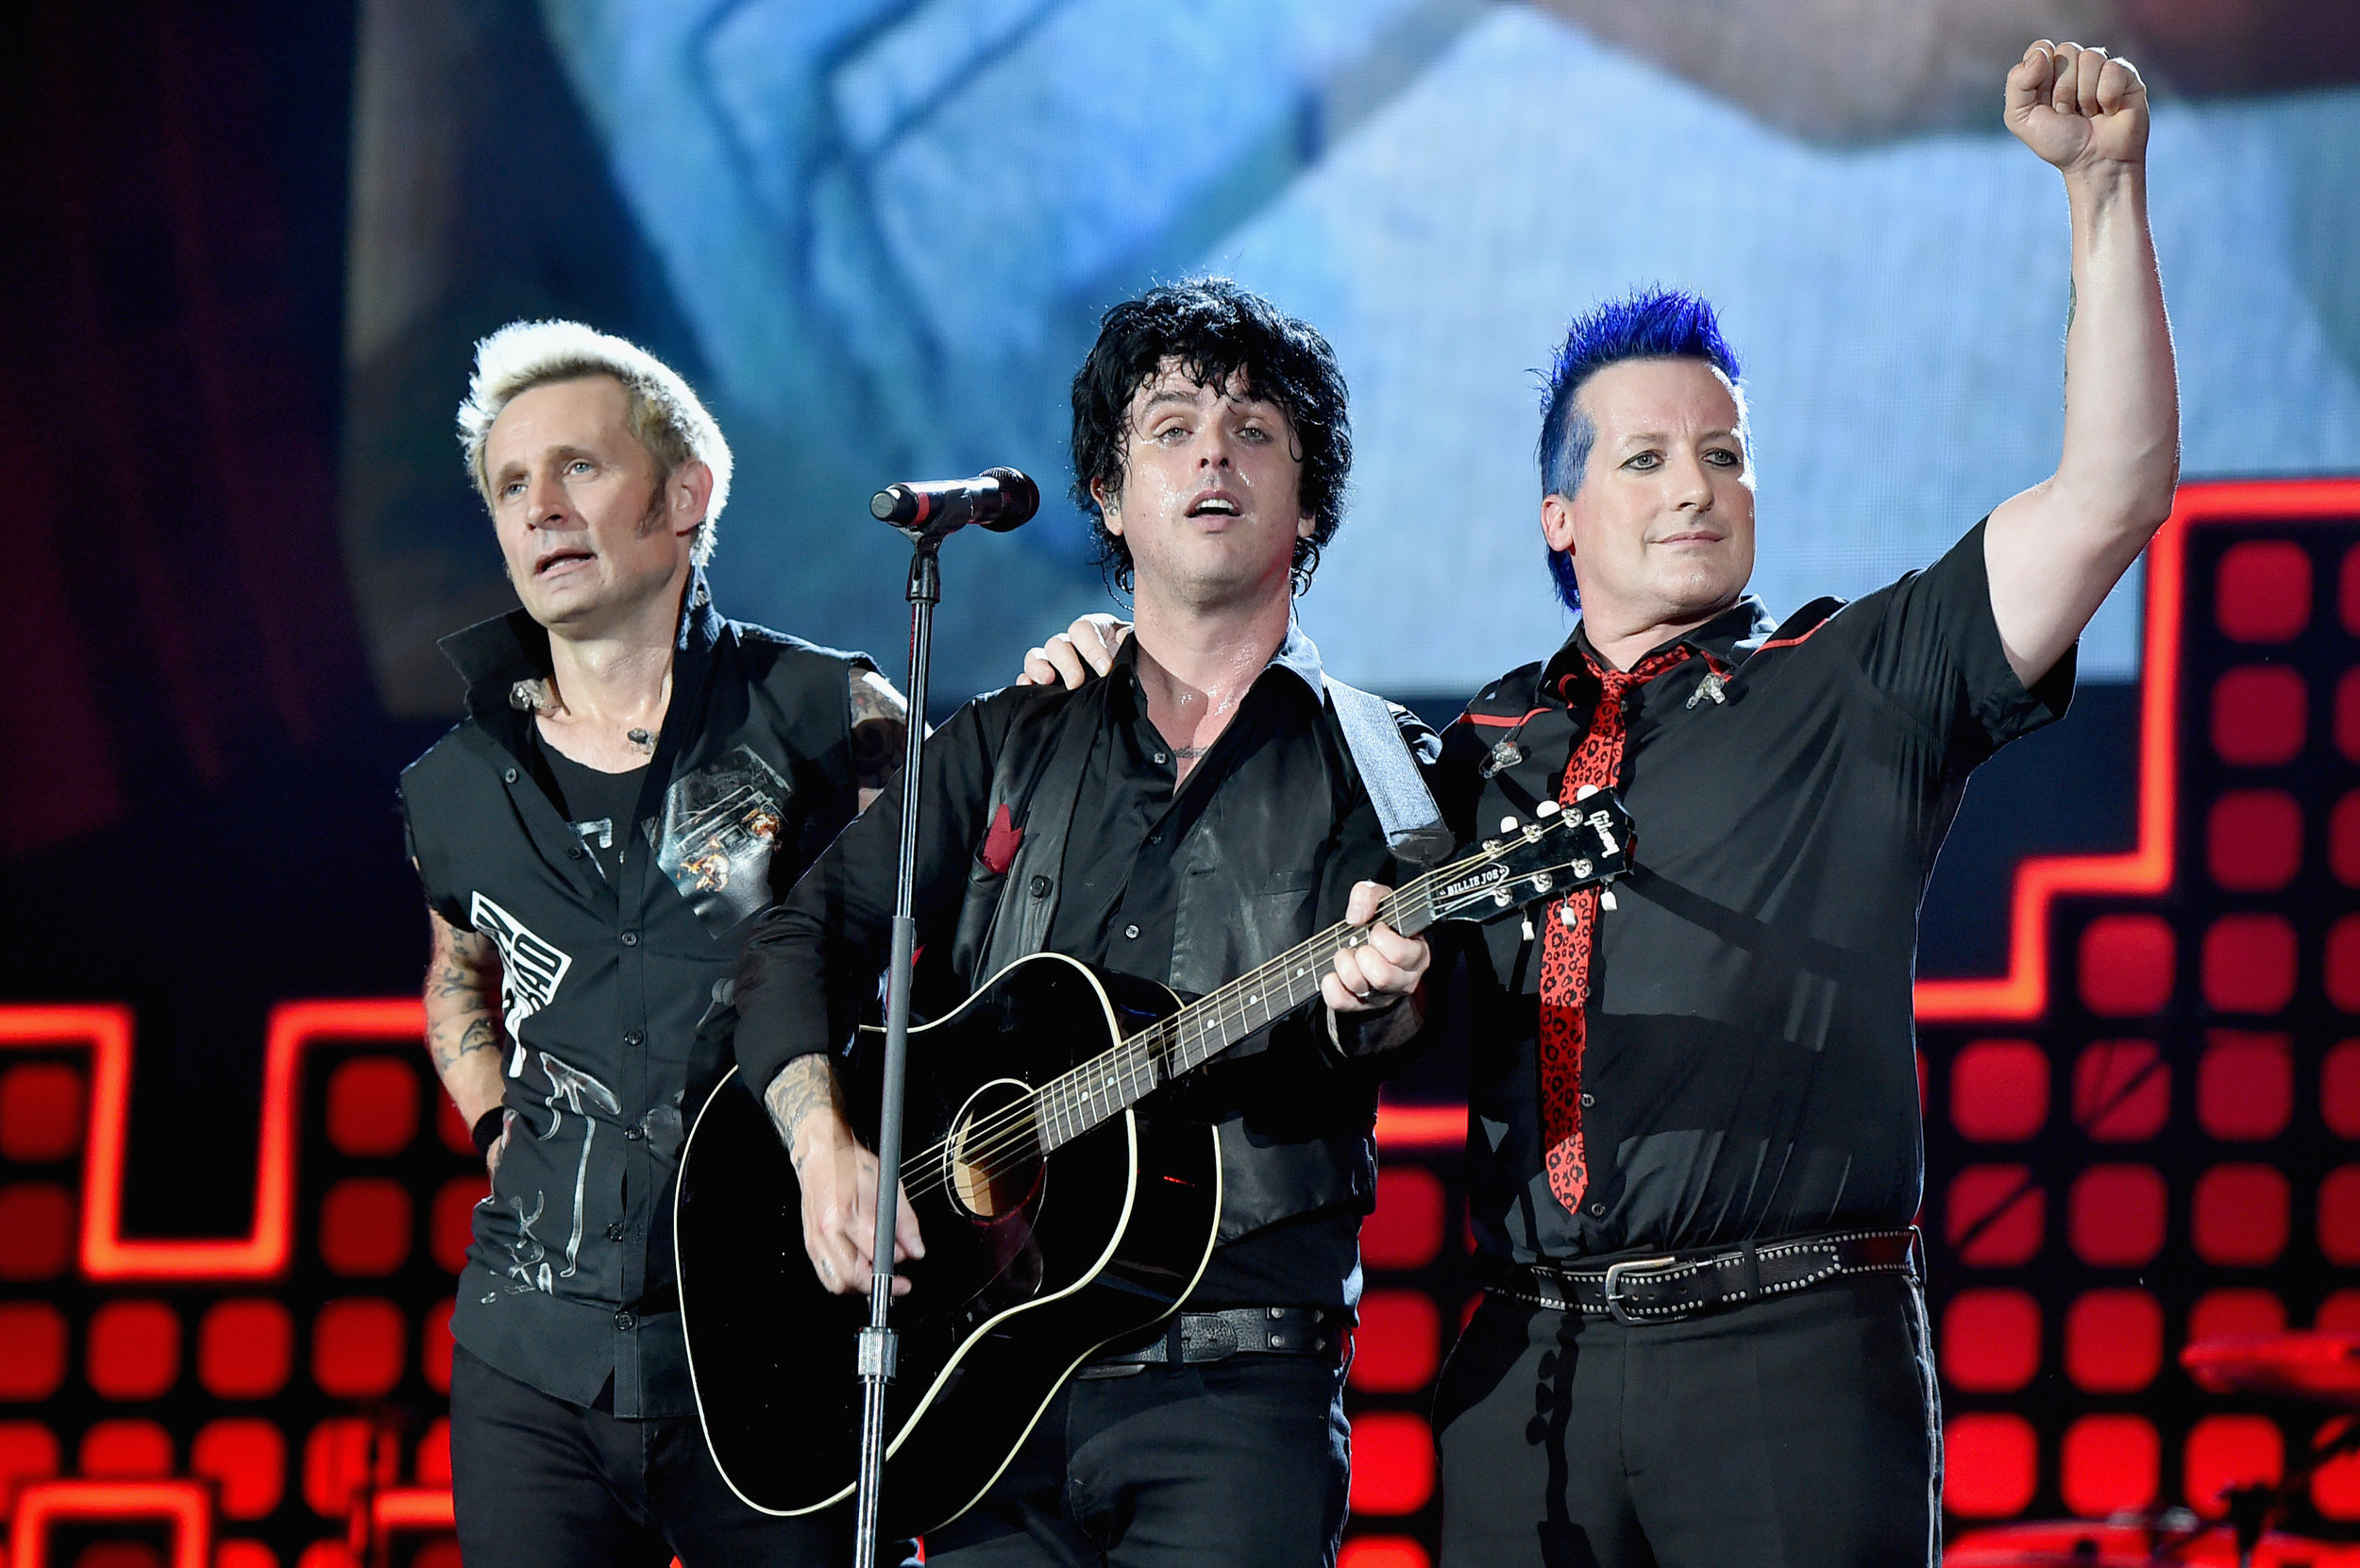 | PHOTOGRAPHY Theo Wargo/Getty Images for Global Citizen - Tre Cool; Billie Joe Armstrong; Mike Dirnt |